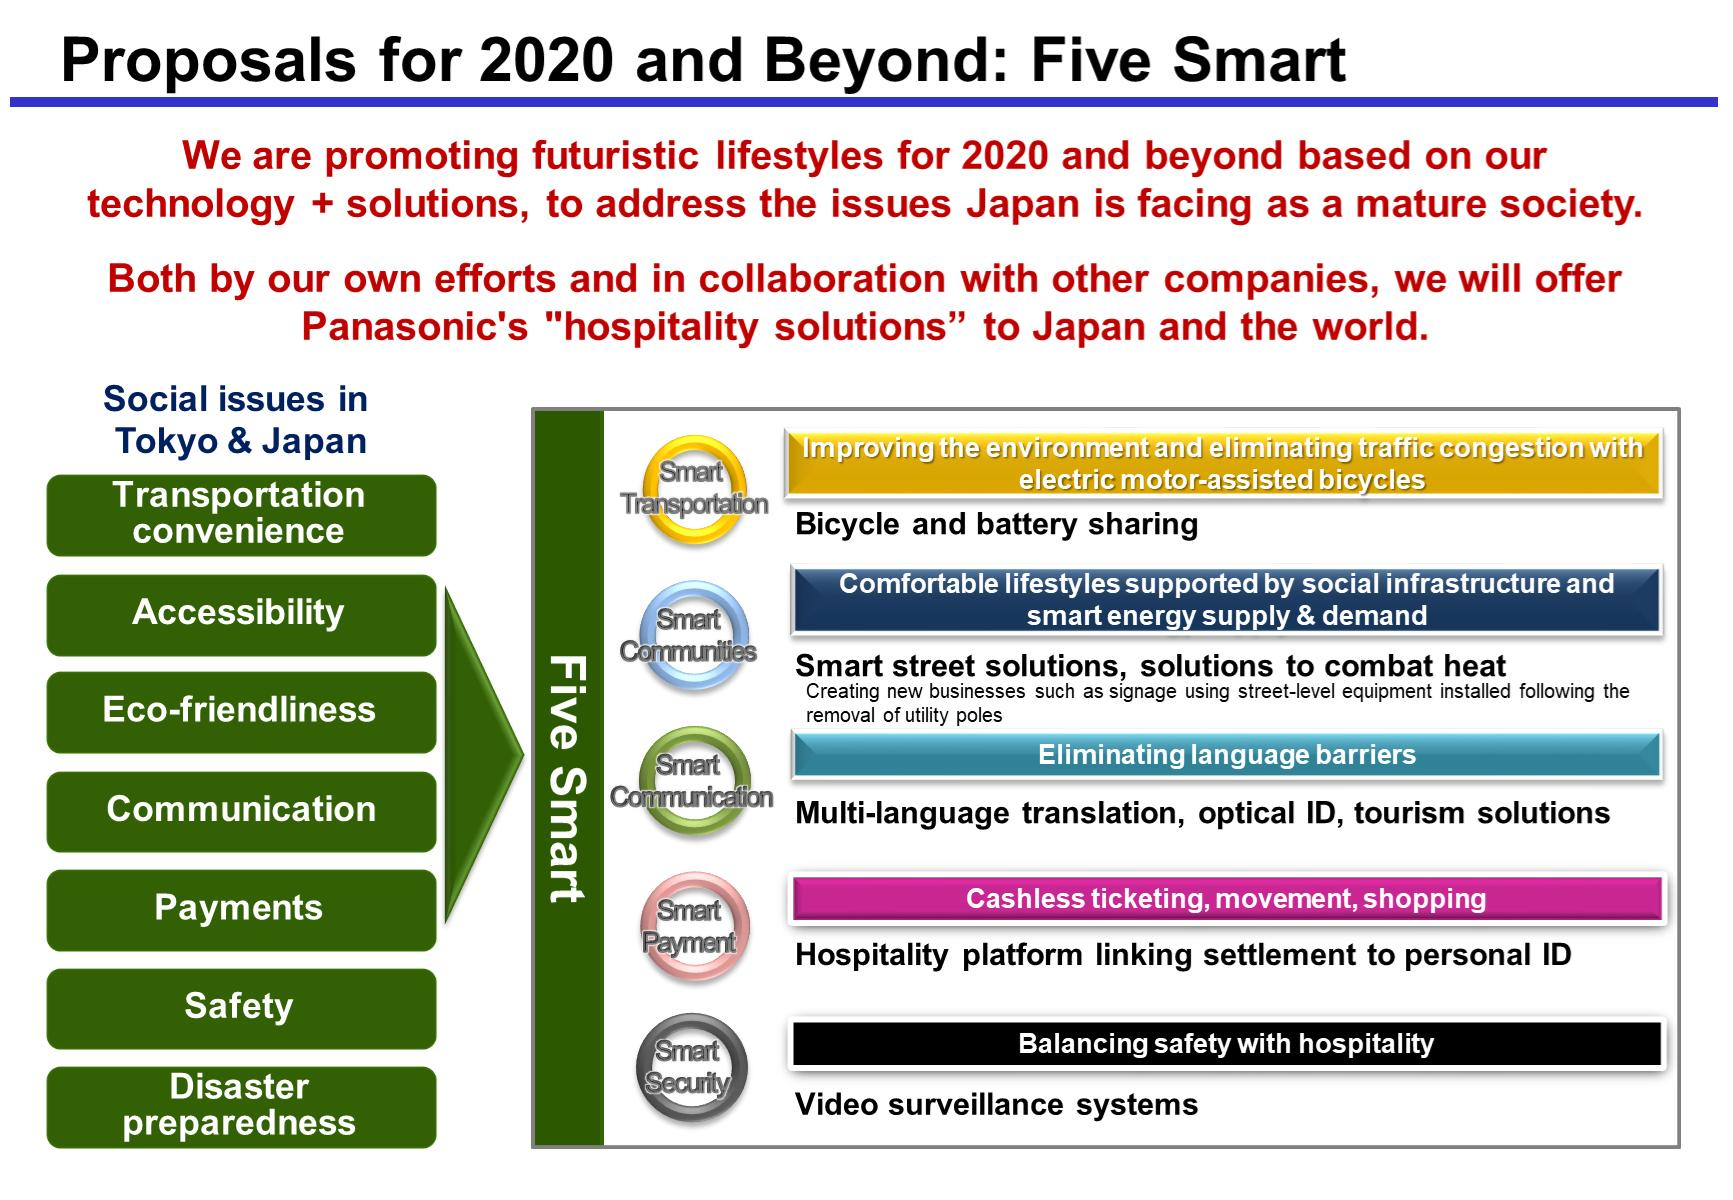 image: Proposals for 2020 and Beyond: Five Smart